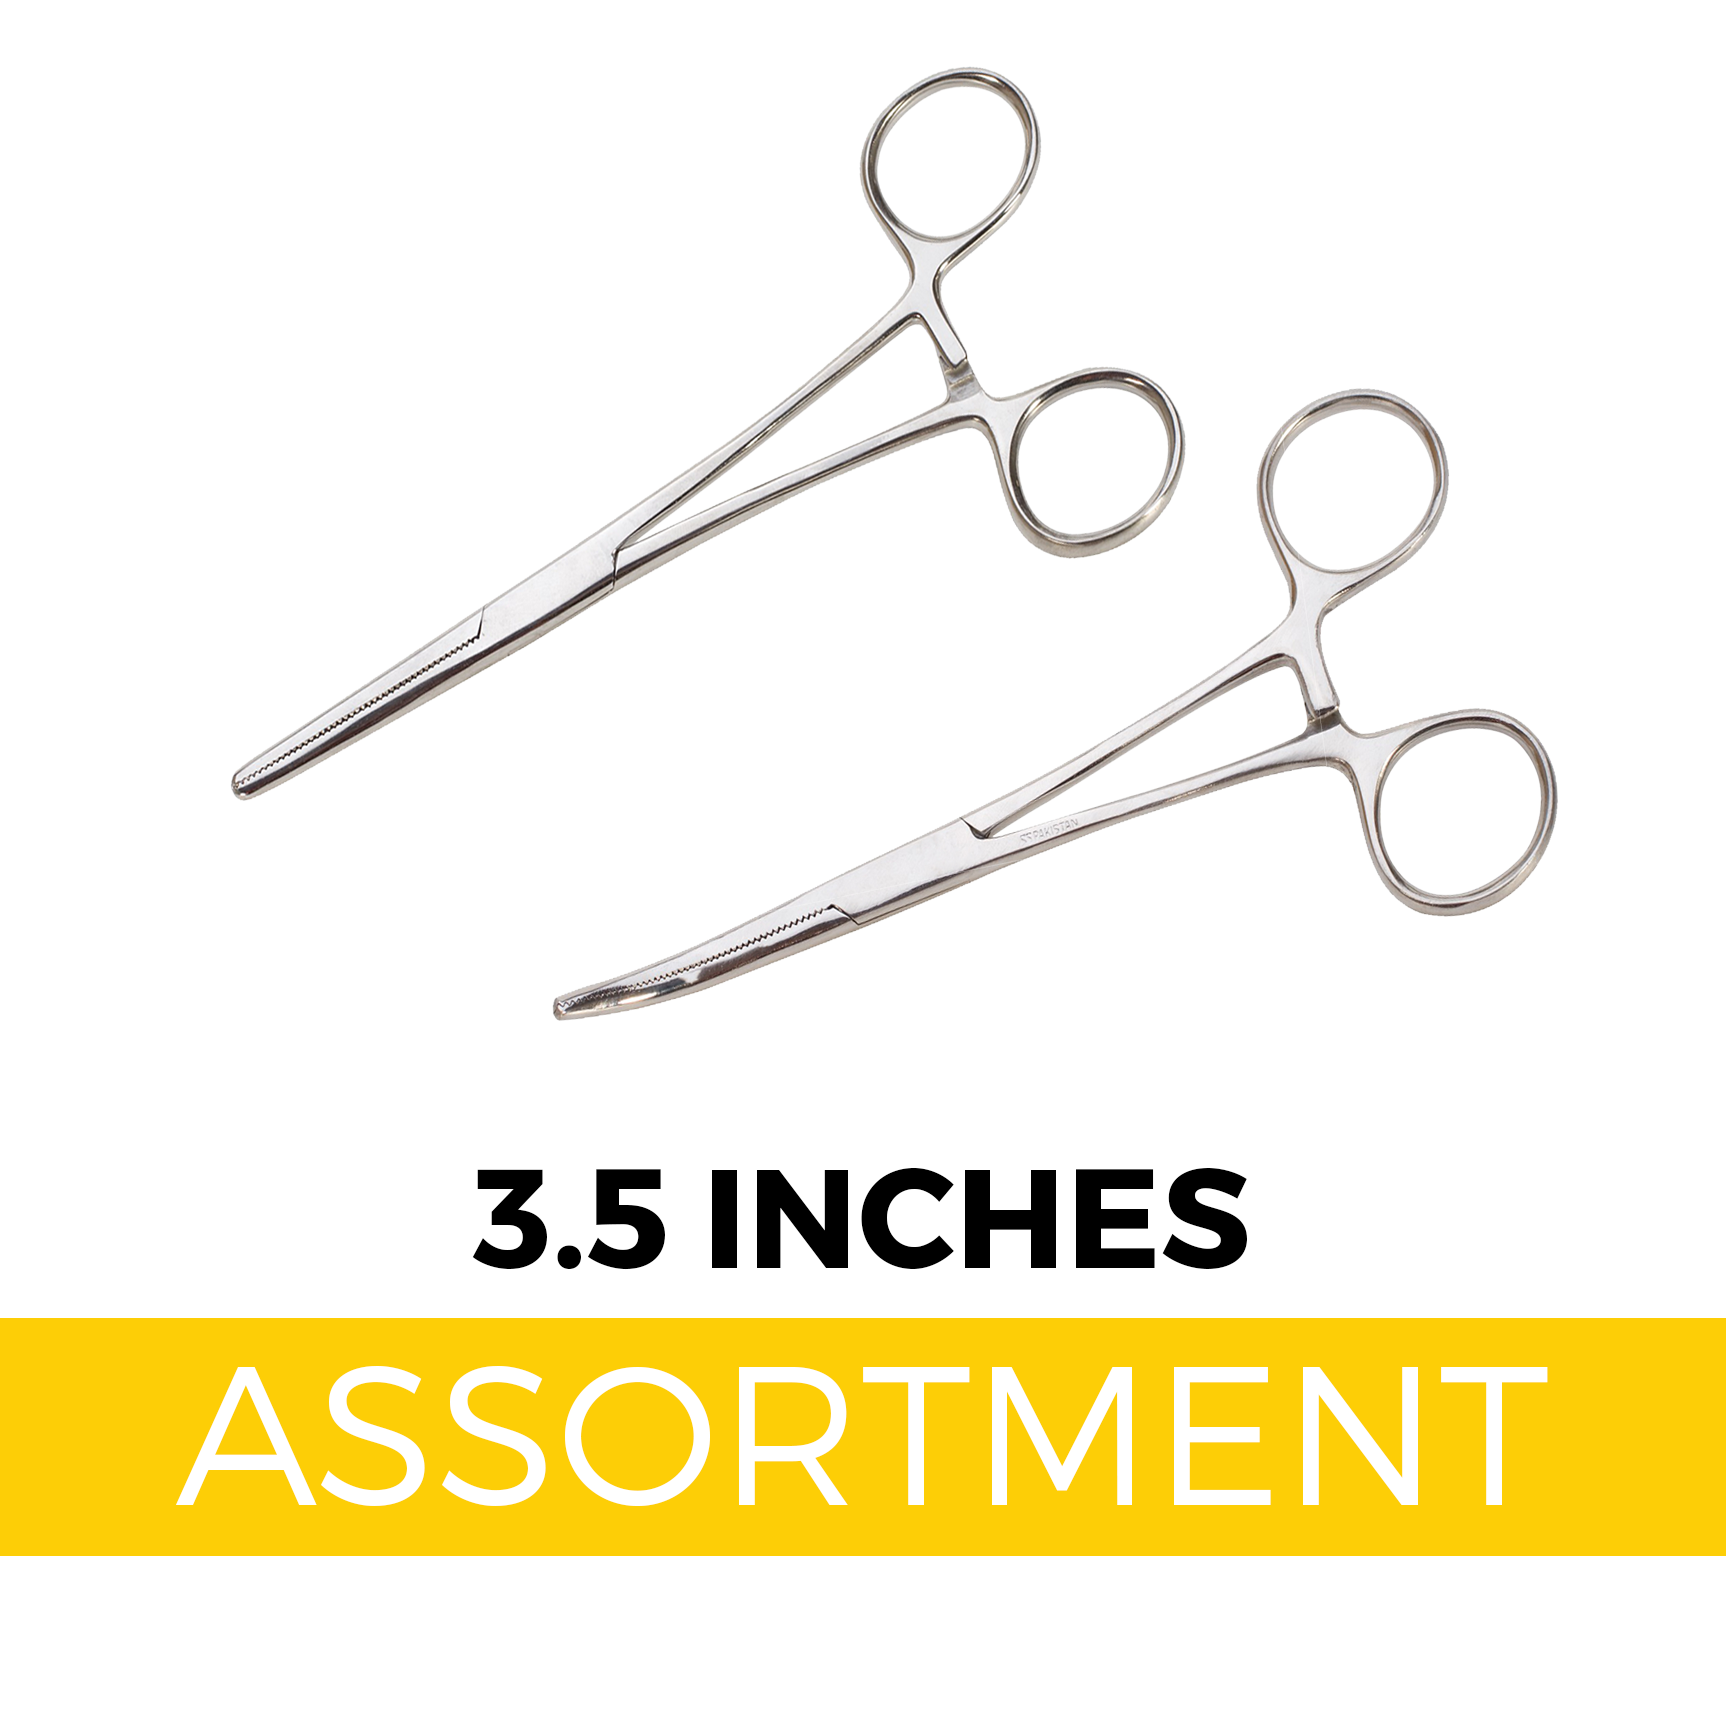 "Handy Clamps - 3.5"" Forceps Assortment (20 pc Display)"